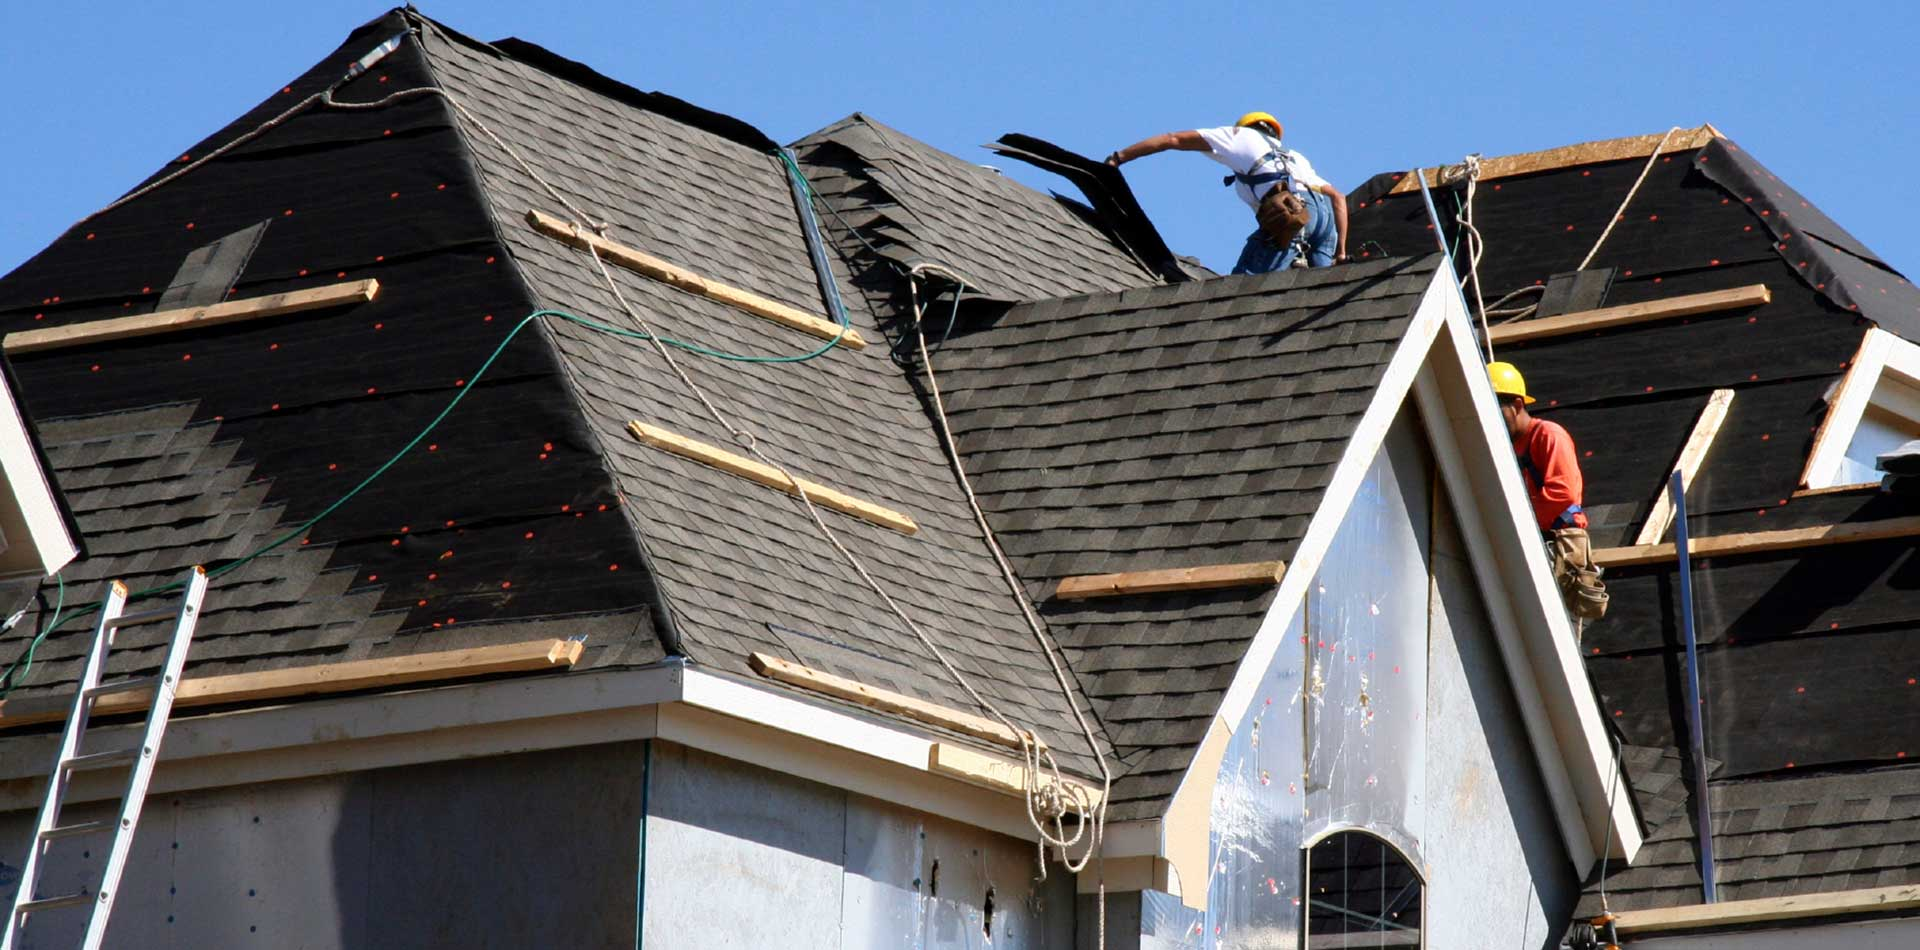 Roof Installers Bay Area, Oakland, Berkeley, East Bay, Walnut Creek, Pleasant Hill